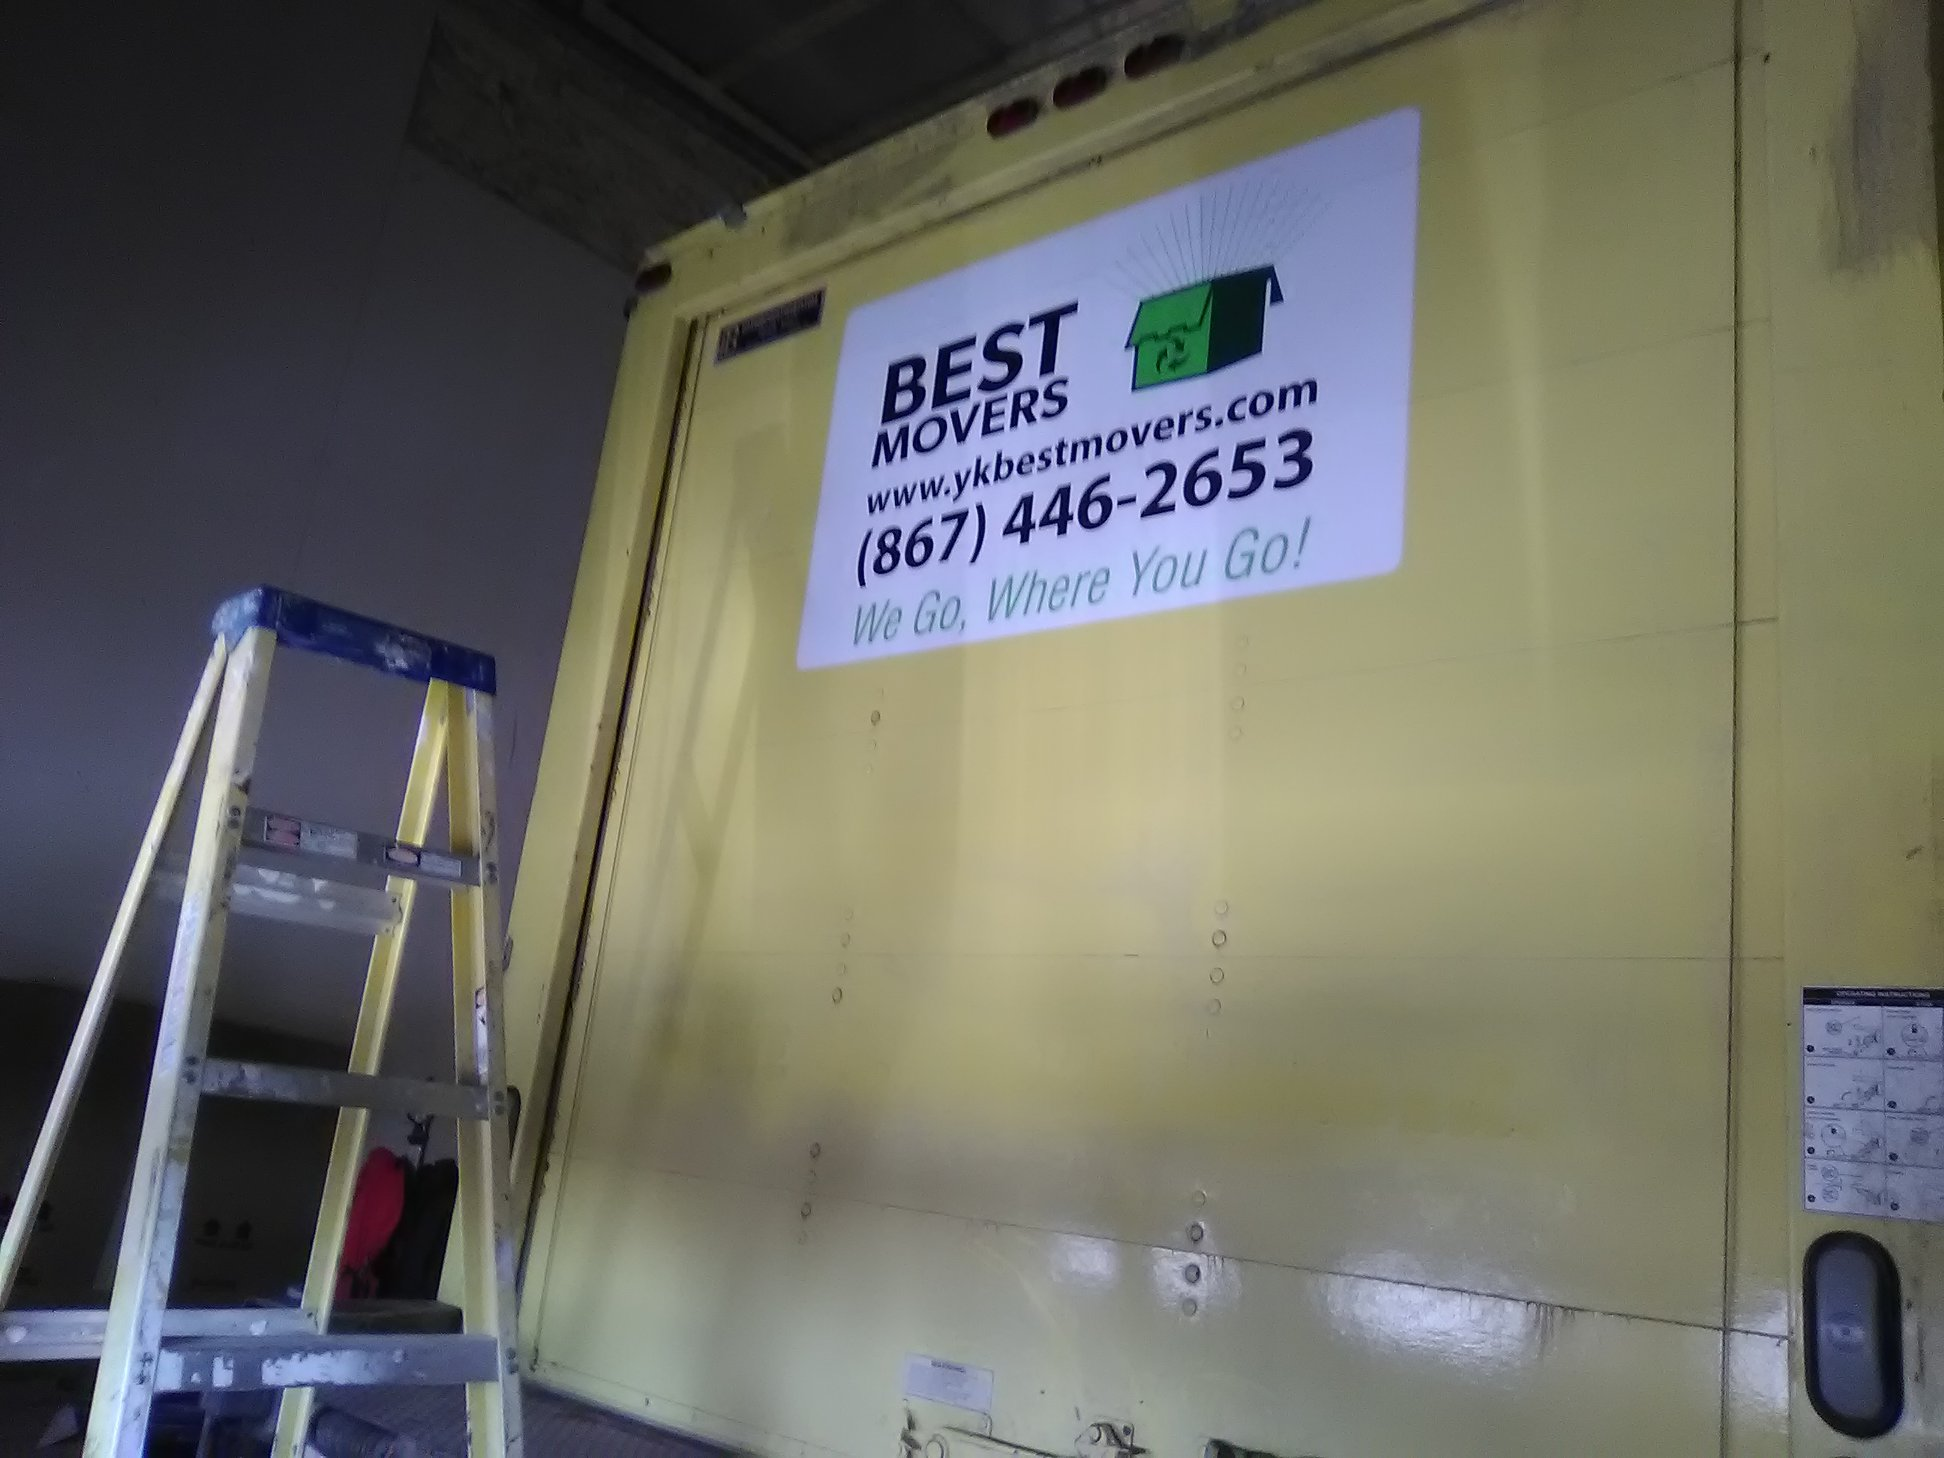 YK Best Movers Fleet Decal.